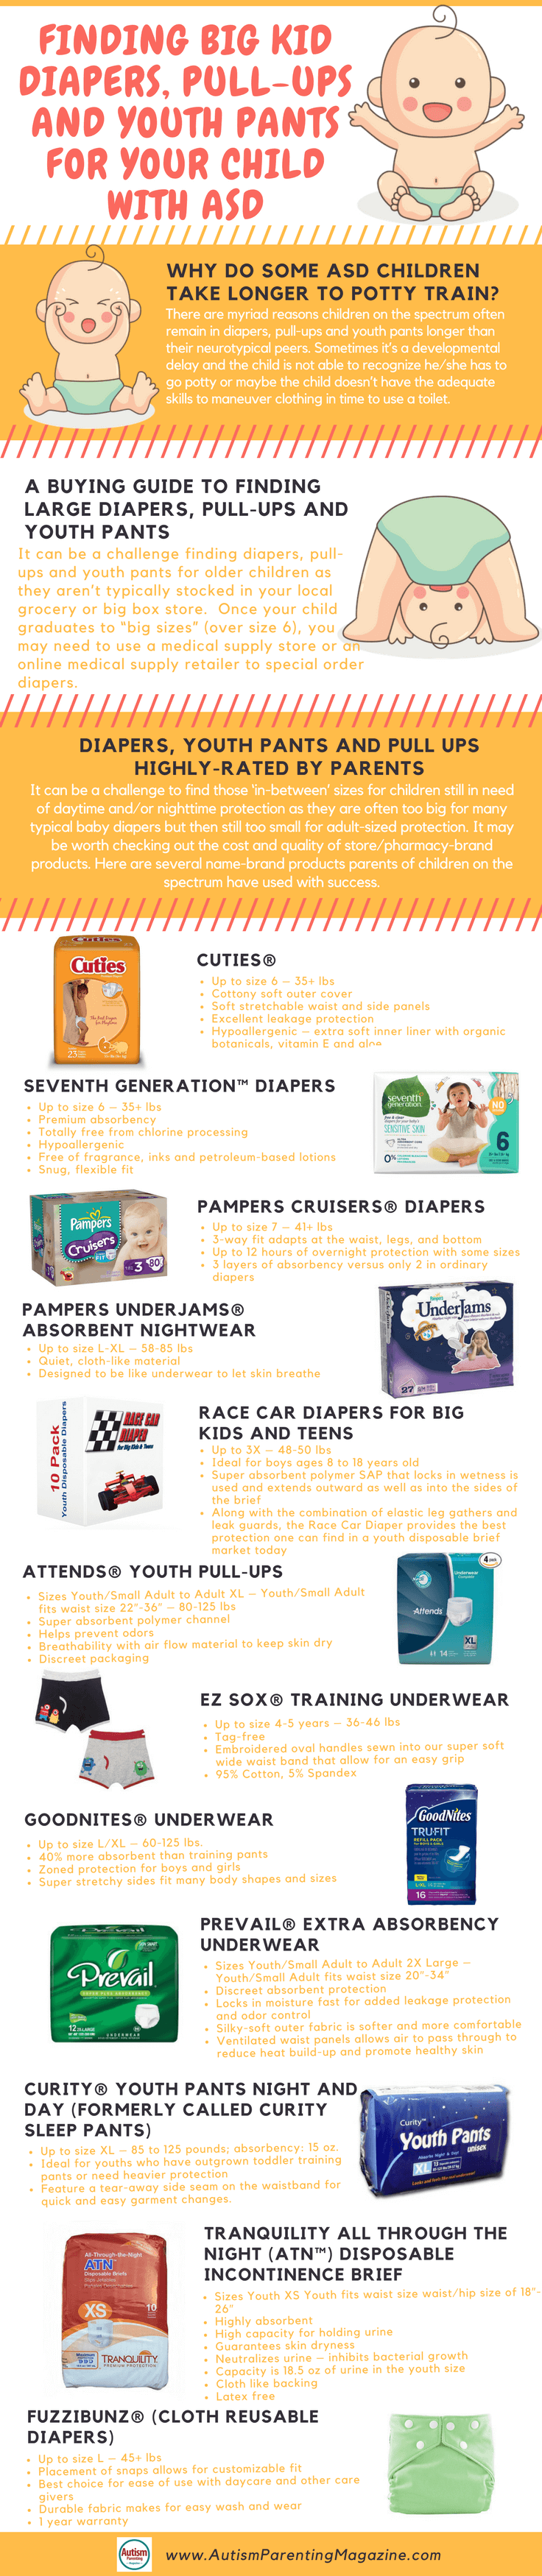 Finding Big Kid Diapers, Pull-Ups and Youth Pants For Your Child with ASD